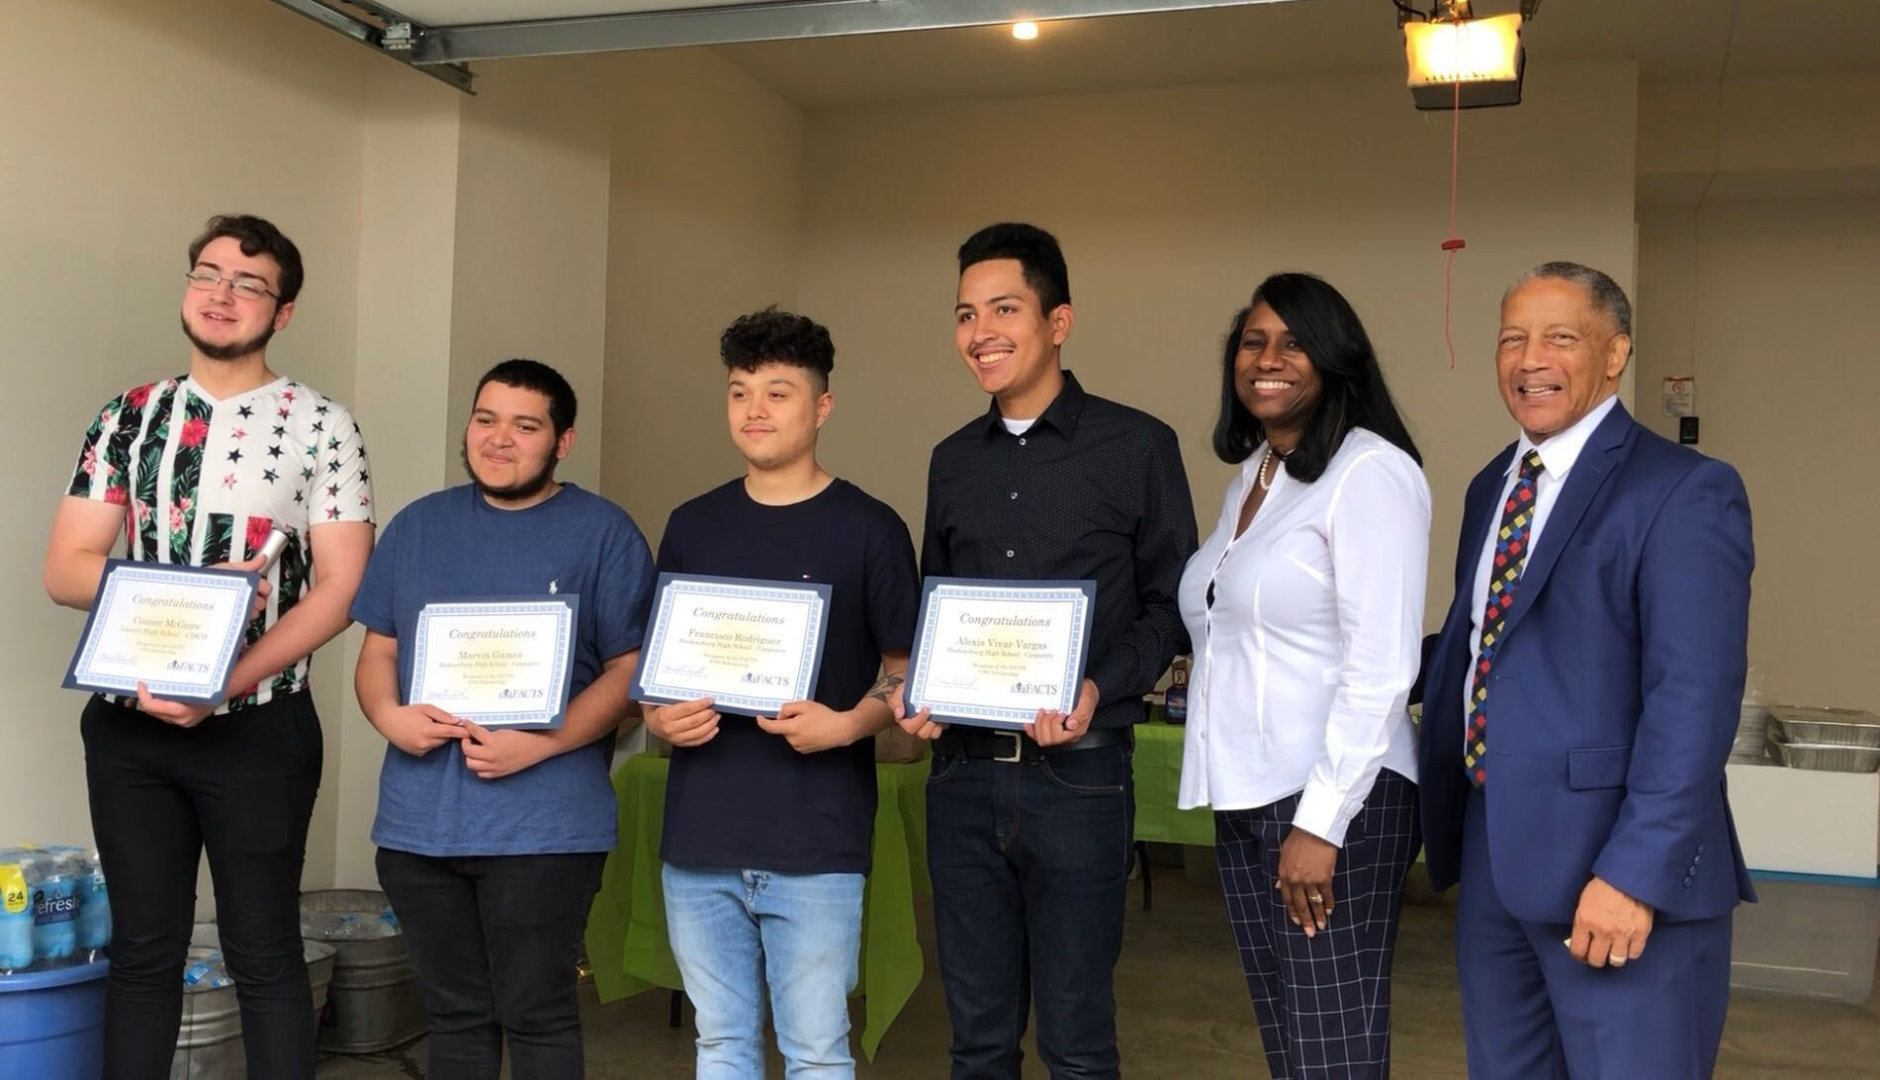 Conner McGuire, Marvin Gamez, Alexis Vivar Vargas and Francisco Rodriguez, the winners of $700 scholarships, are pictured with Prince George's County School Board member Sonya Williams and FACT Chair Howard Burnett. (WTOP/Kristi King)